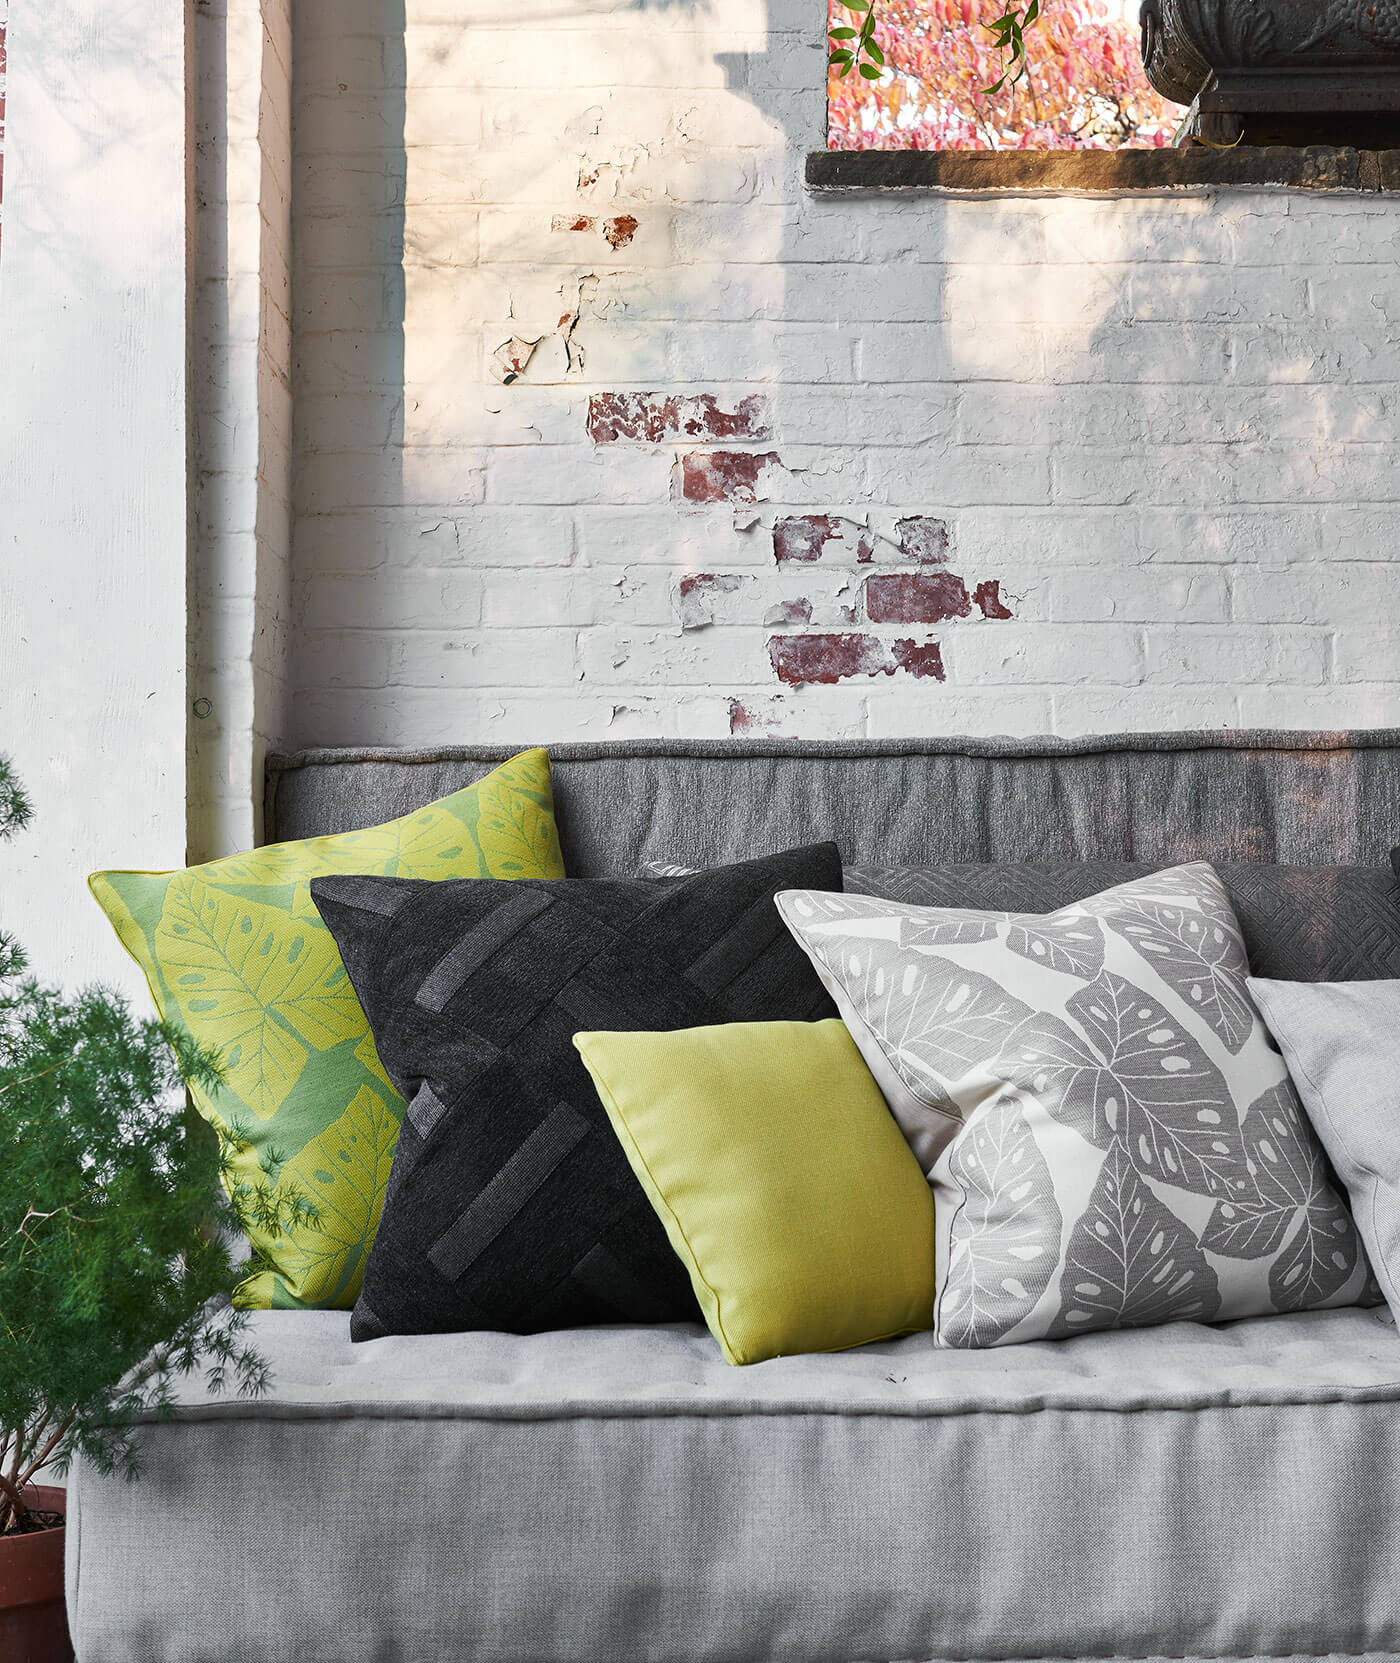 An outdoor room has a seating area of grey cushion with patterned decorative throw pillows